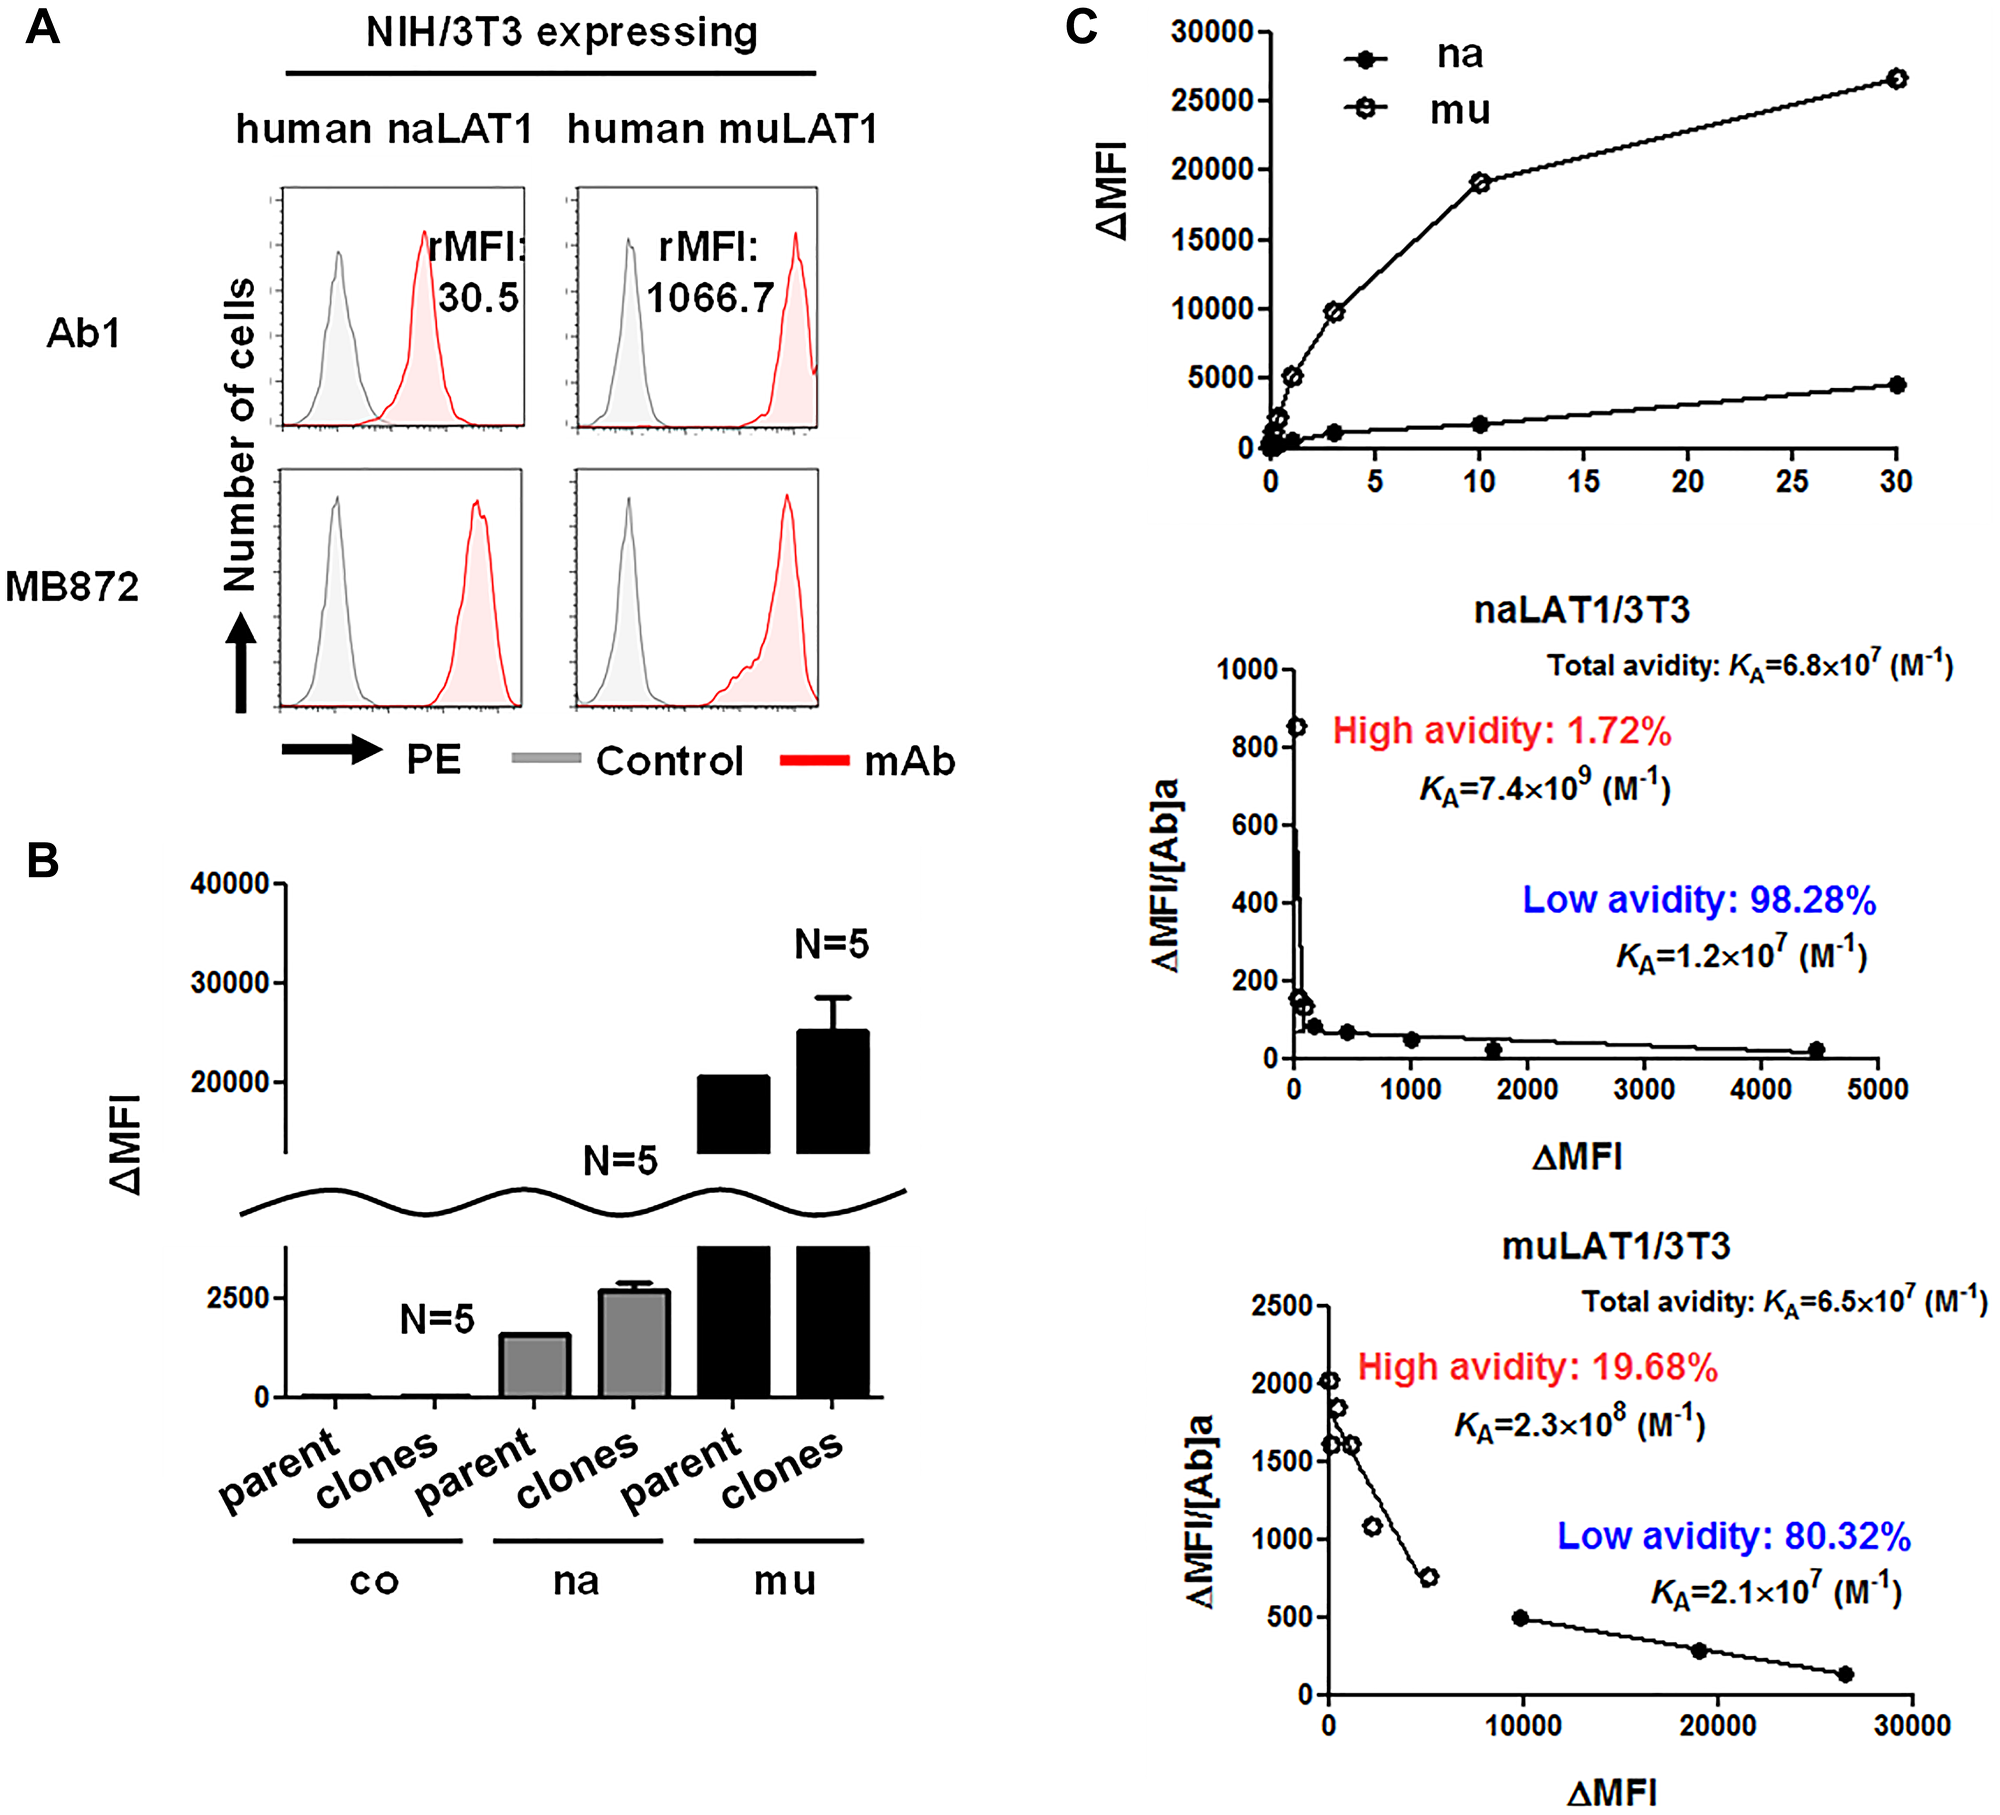 High-affinity binding of anti-LAT1 mAb against muLAT1/3T3 and CD98hc-independent cell-surface expression of LAT1 in human cells.